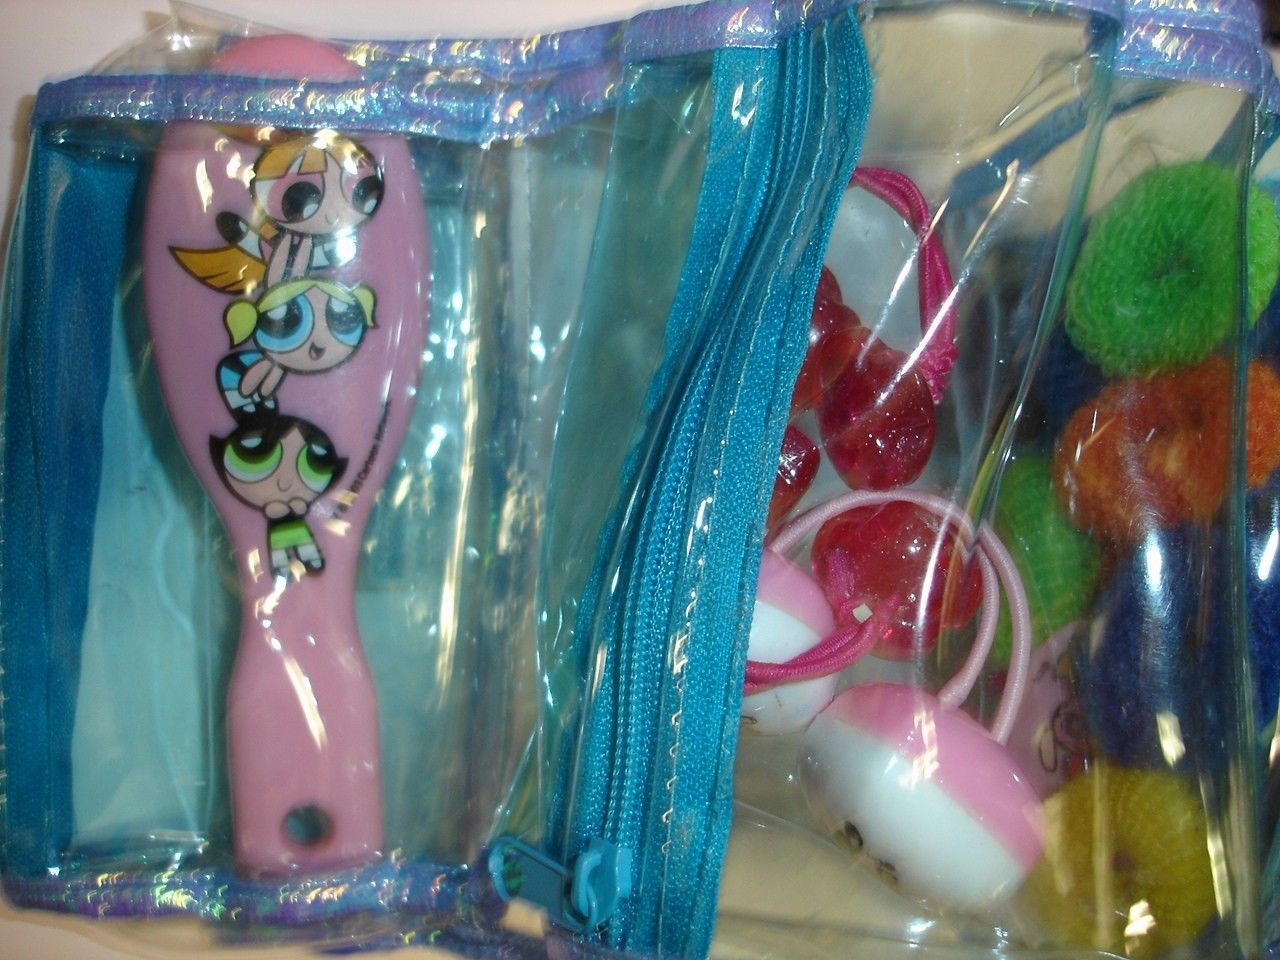 New Cartoon Network Powerpuff Girls mirror & hair accessories set image 3